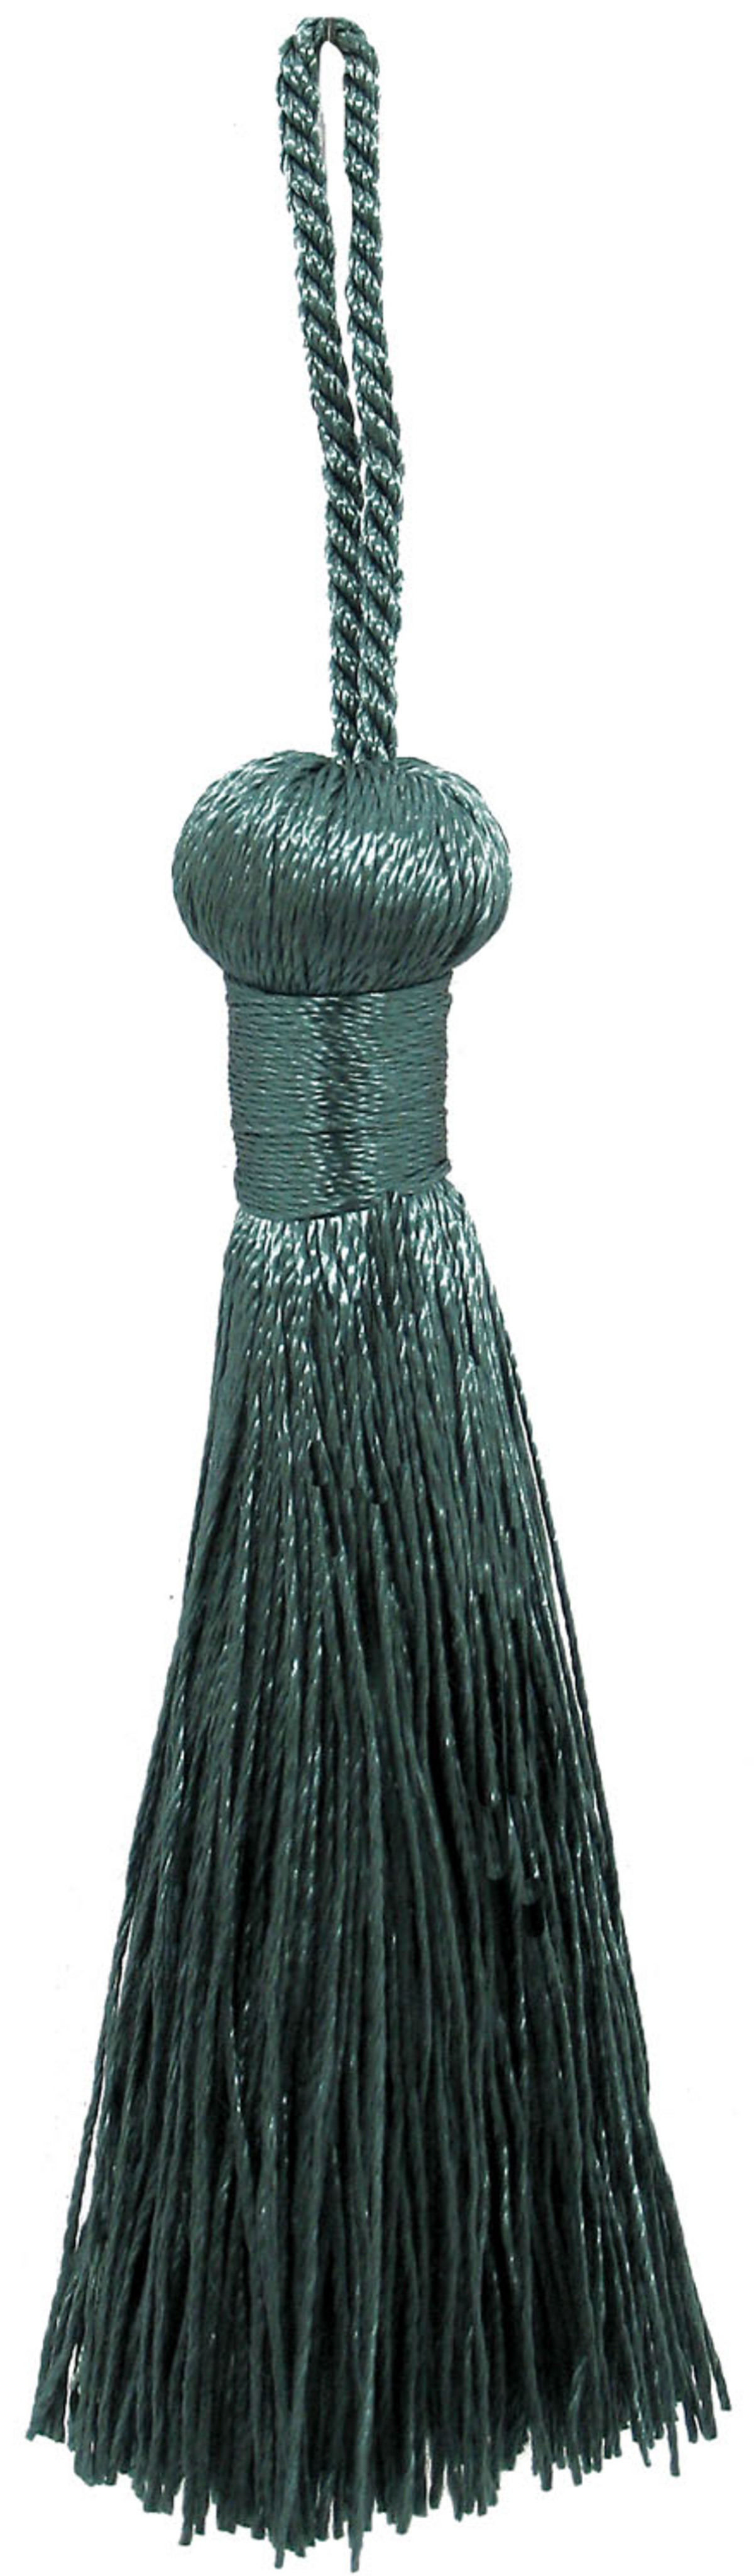 Ss 3in Peacock Rayon Bell Tassel